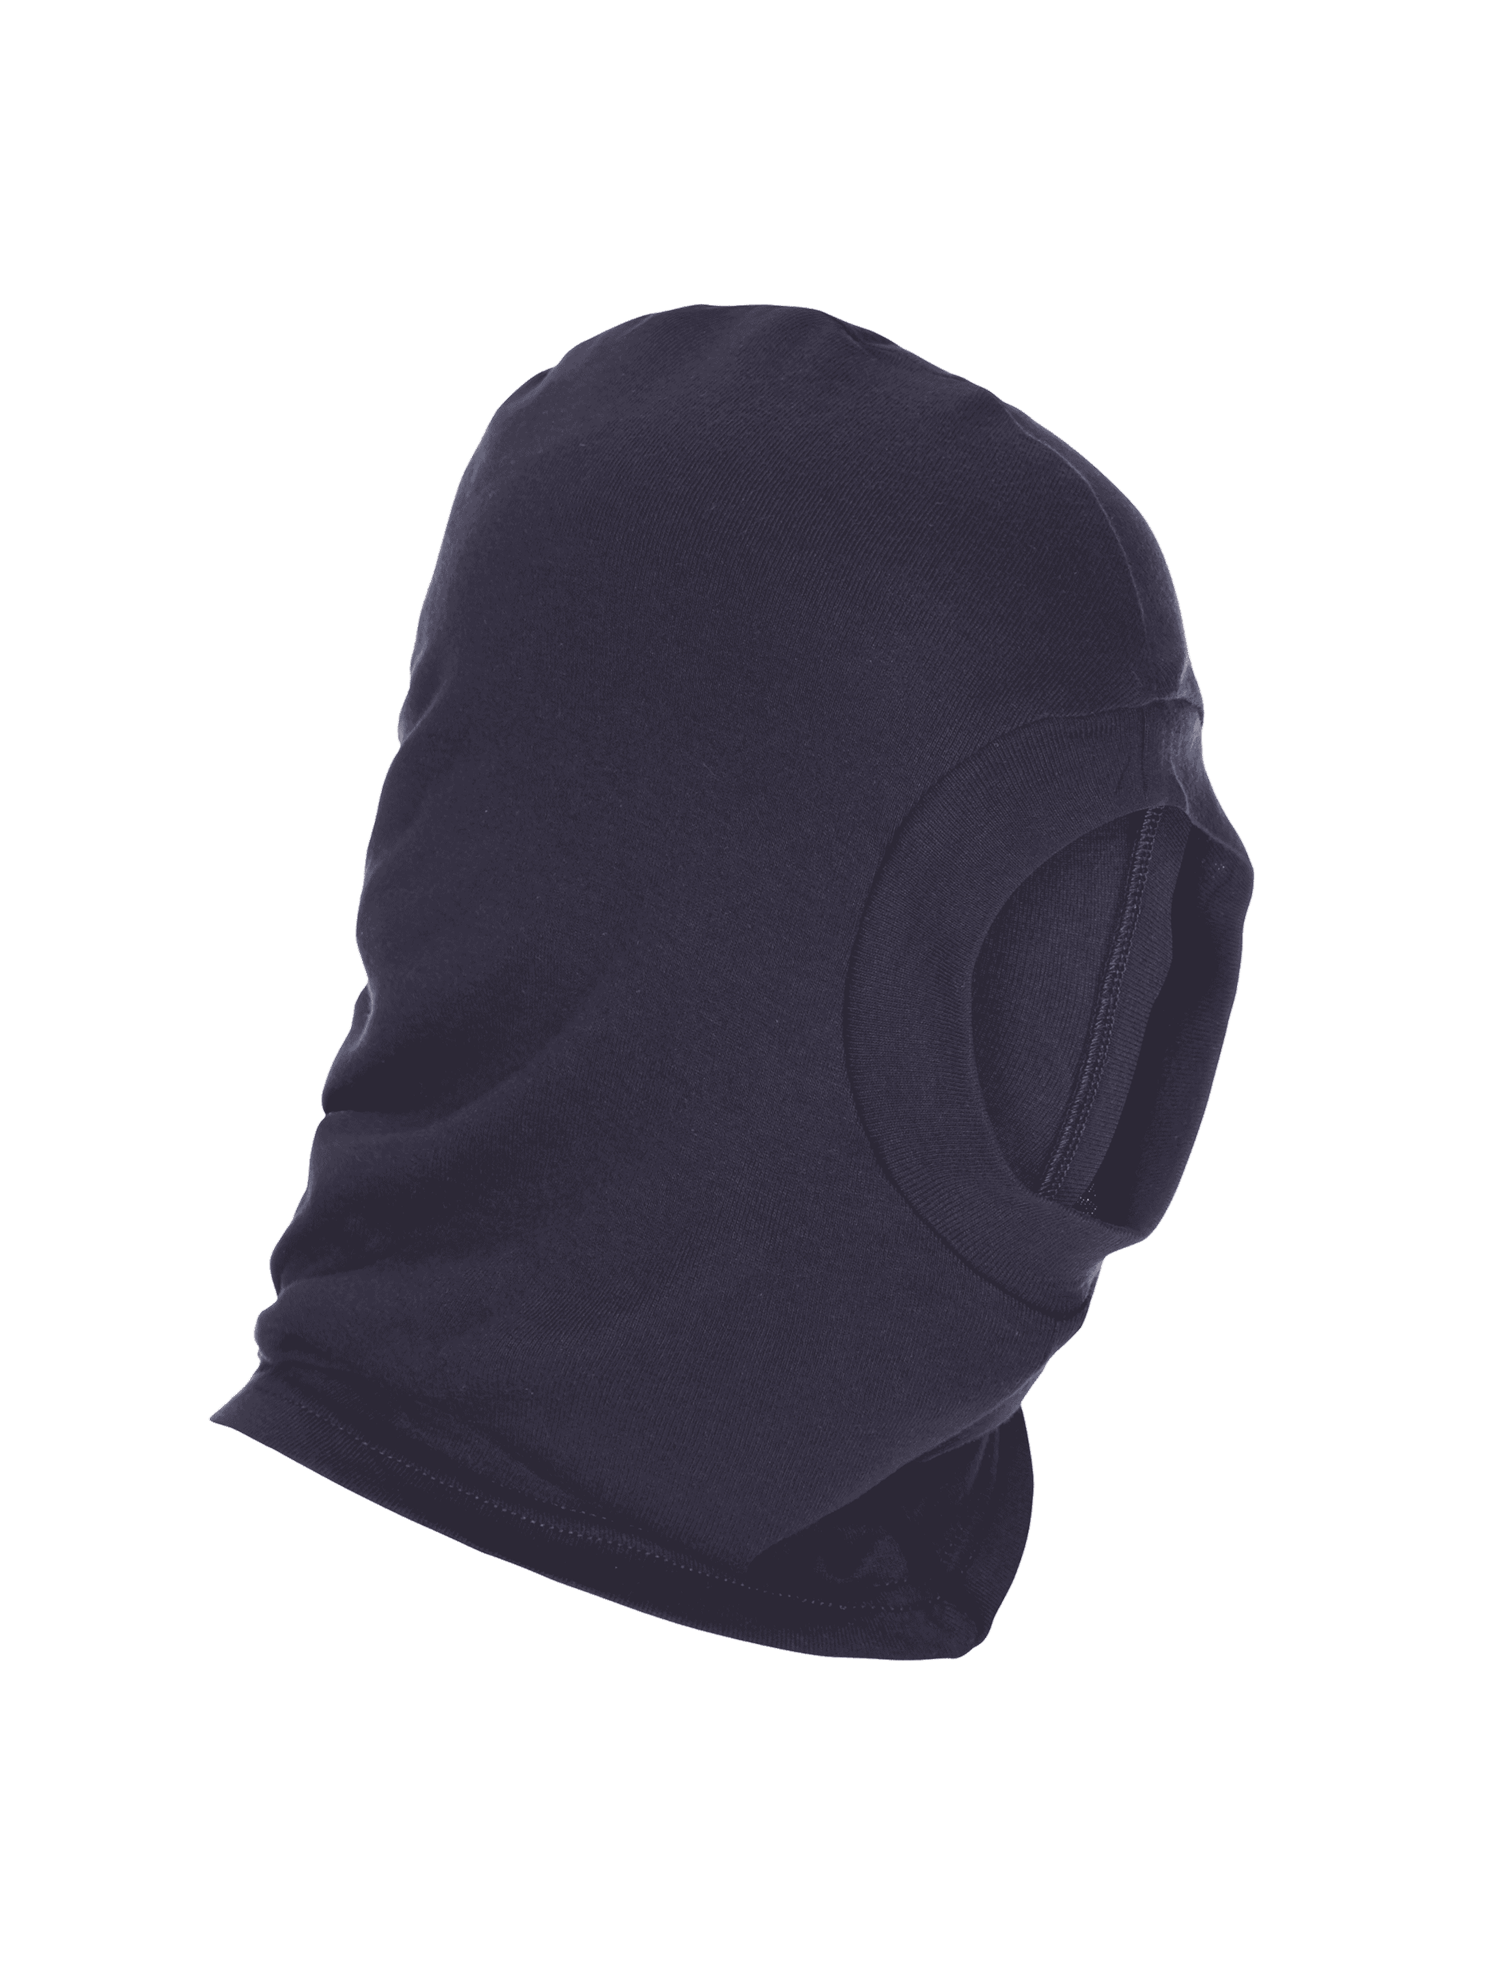 Picture of Protal® Balaclava - Navy